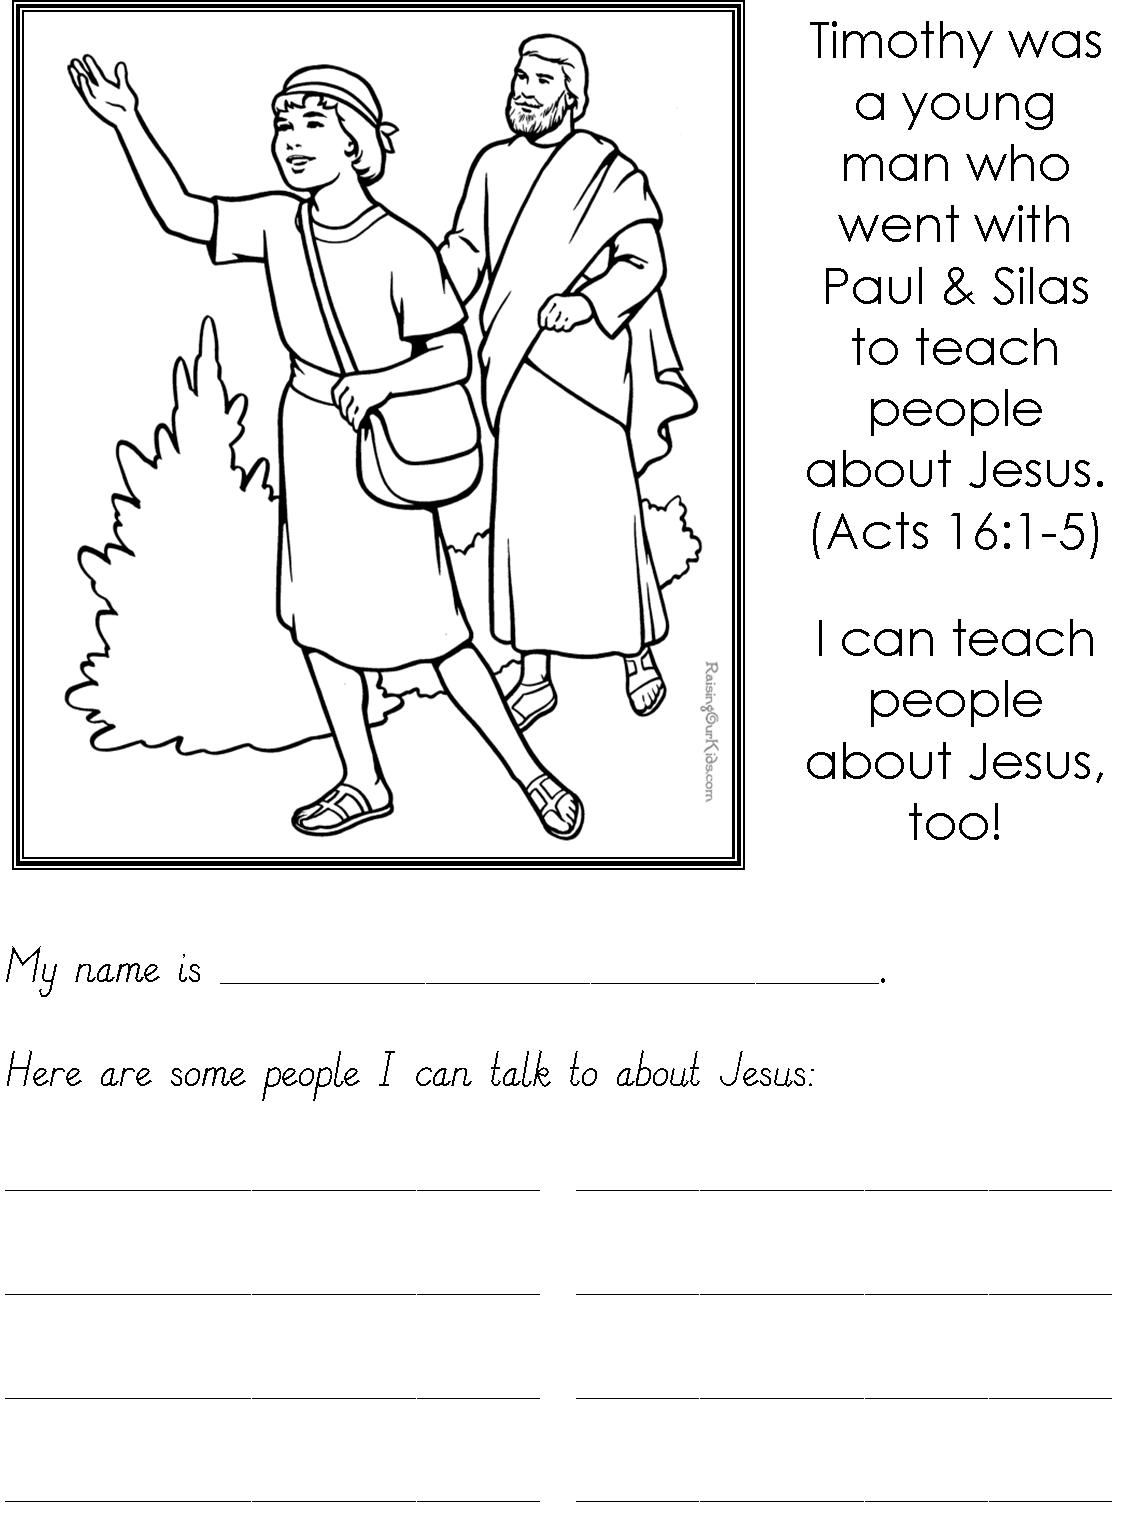 Bible Class Worksheet I Created For Timothy Joins Paul And Silas